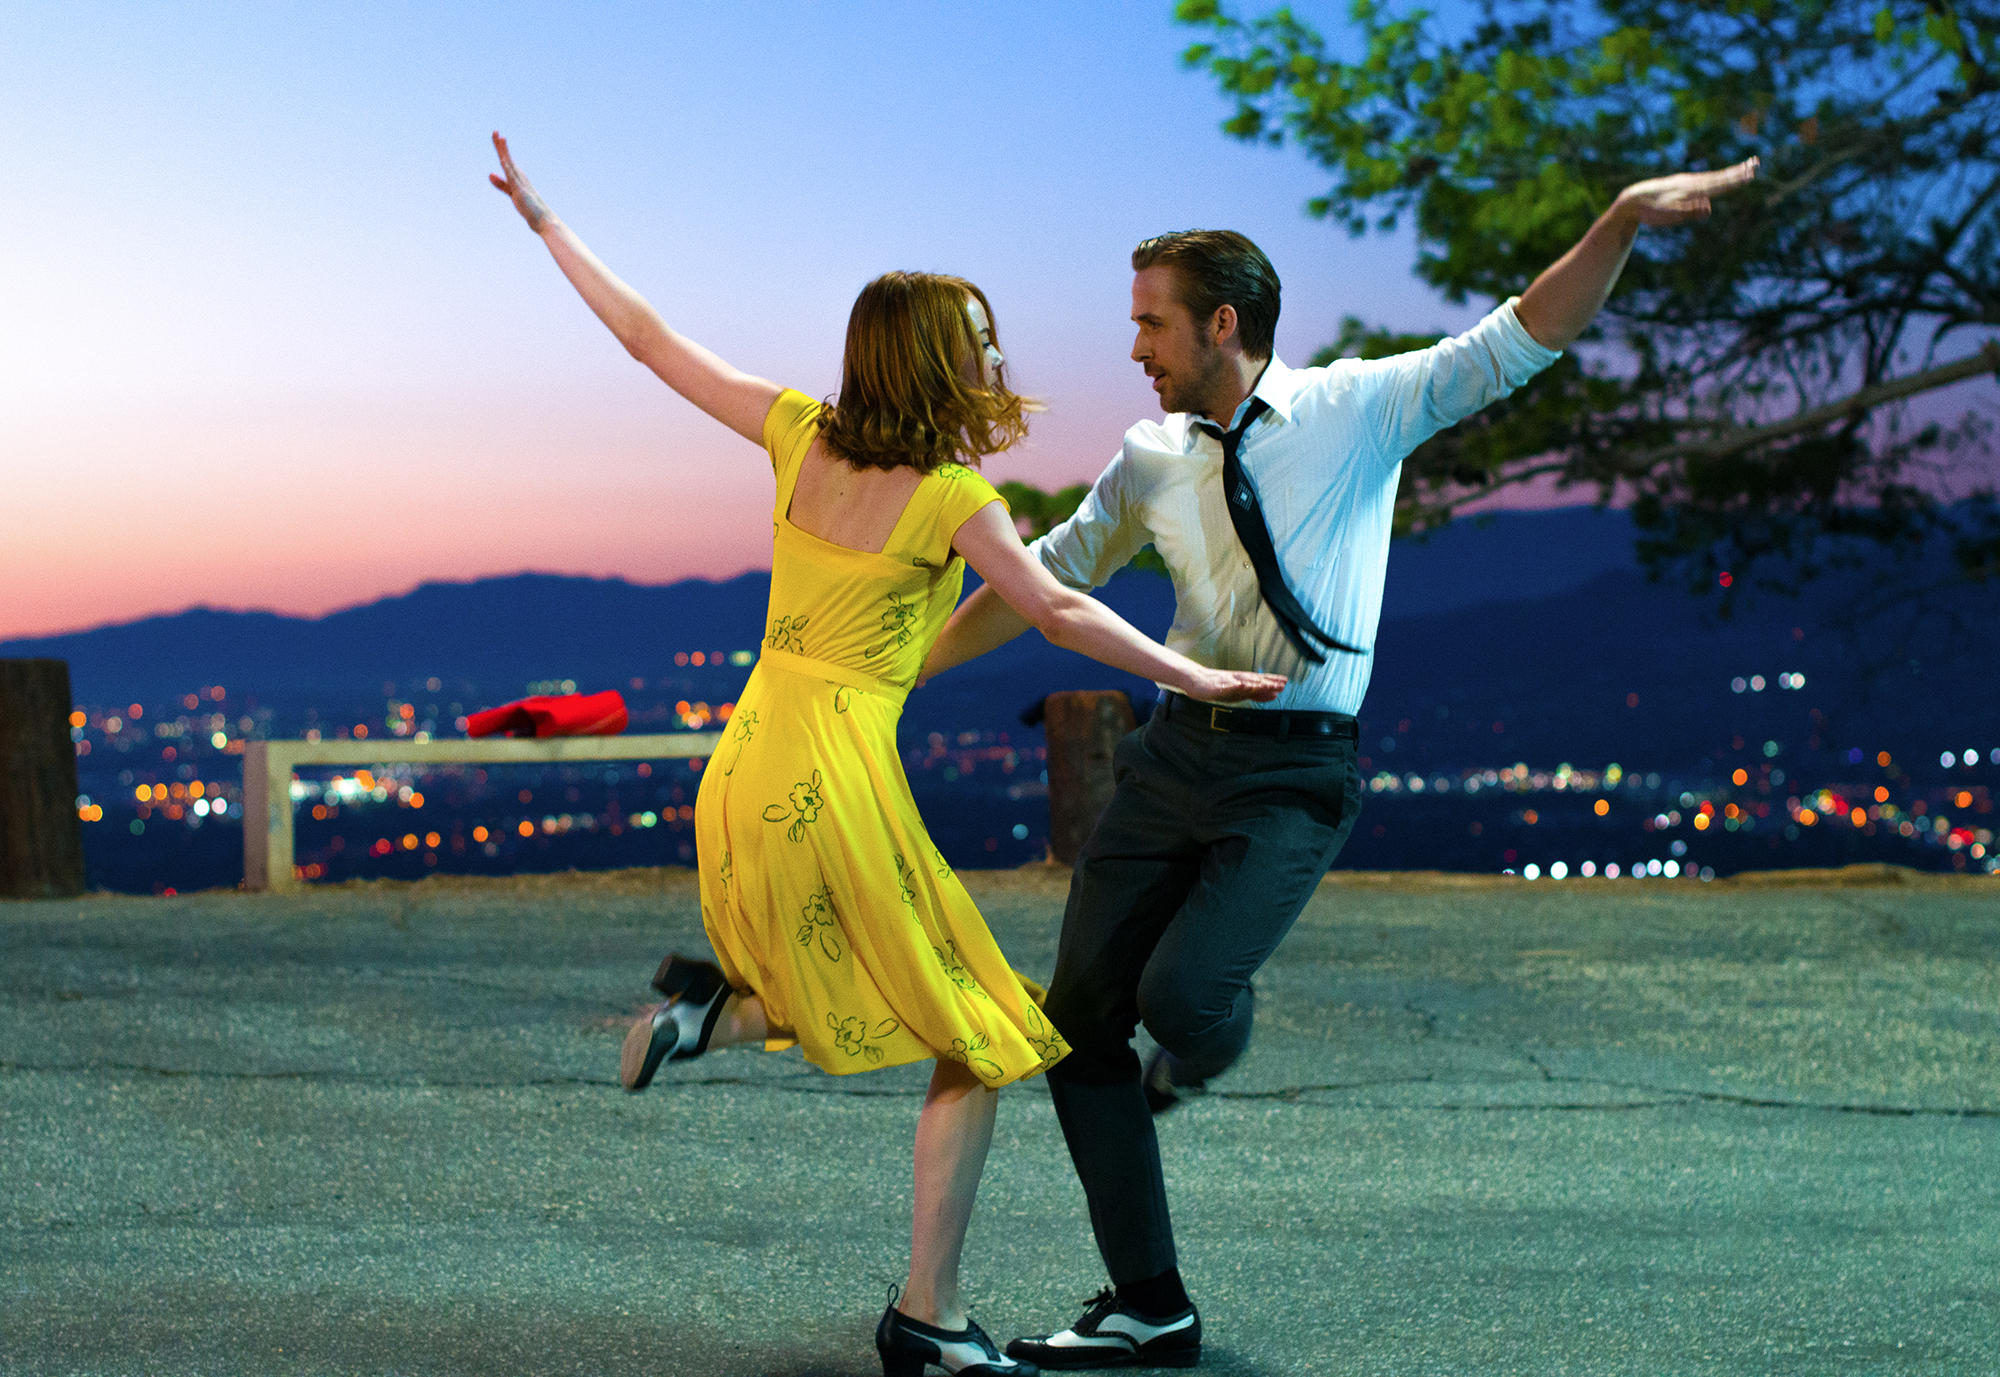 Let's get dreaming with La La Land